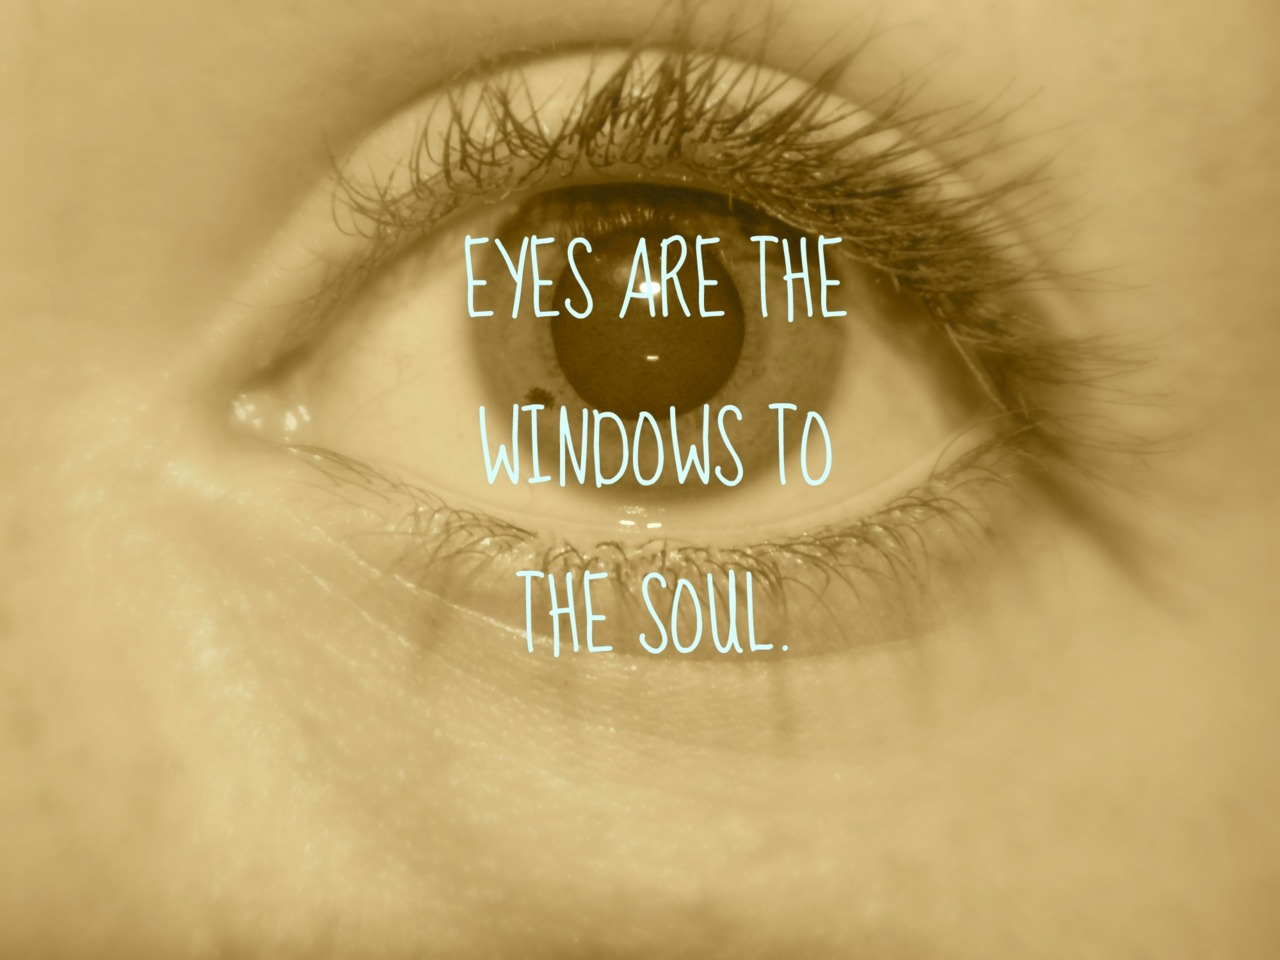 Human Soul Quotes Quotesgram: Quotes About Eyes Being Window To Soul. QuotesGram